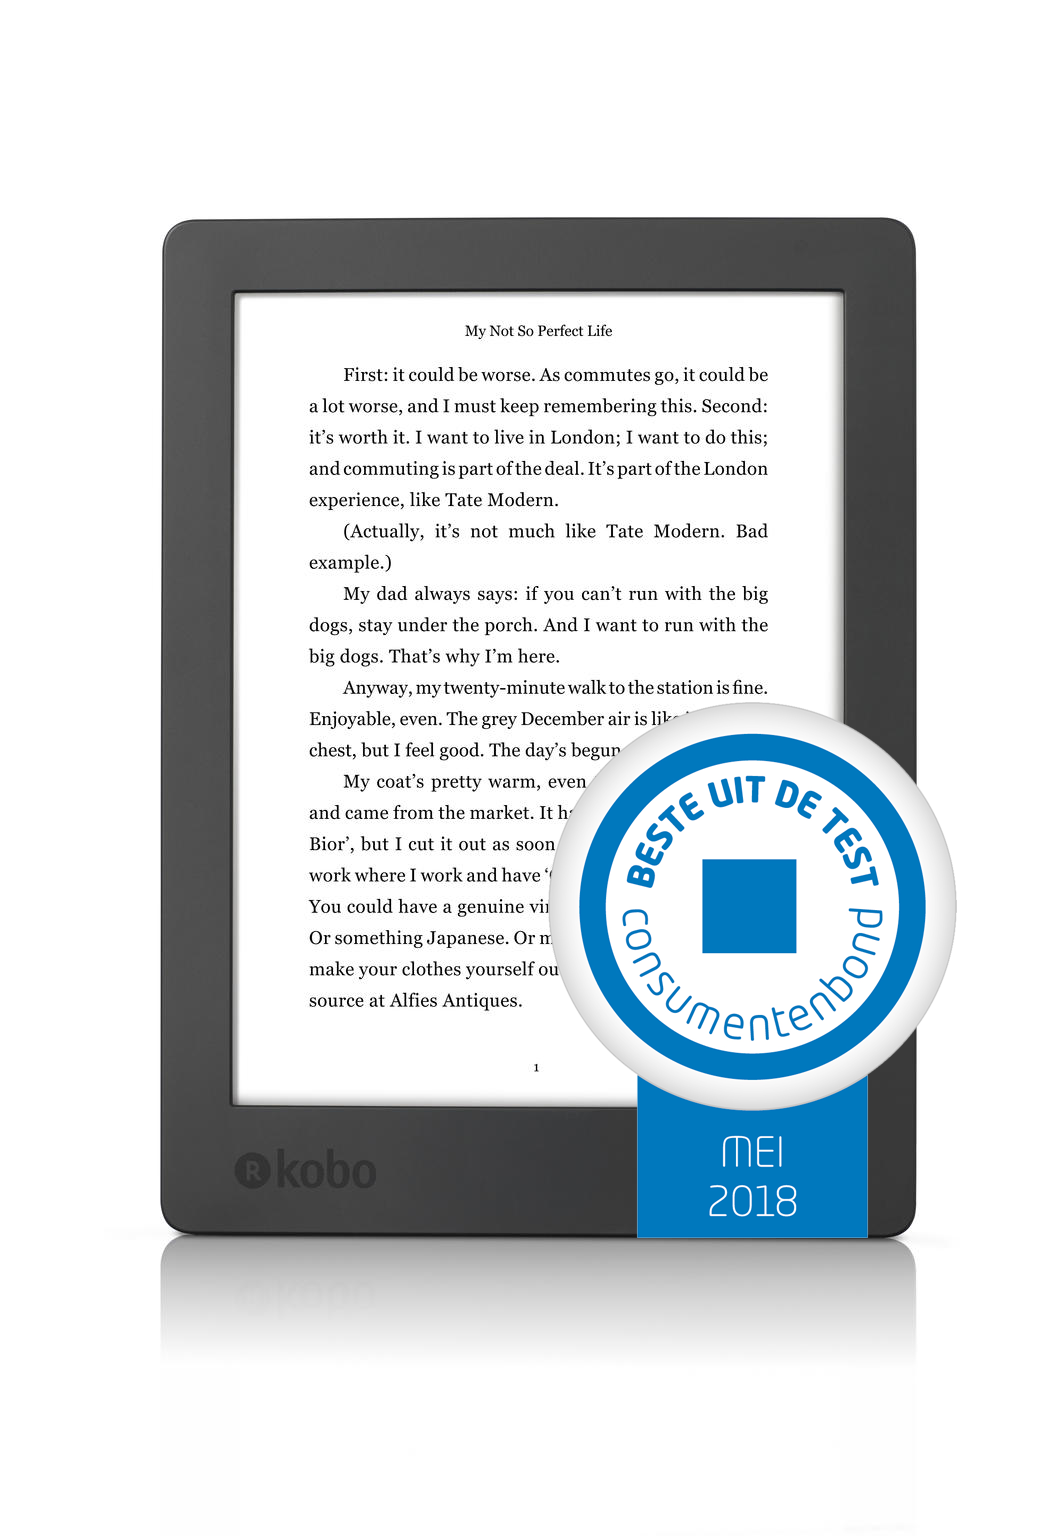 Kobo New Aura H2O e-Reader